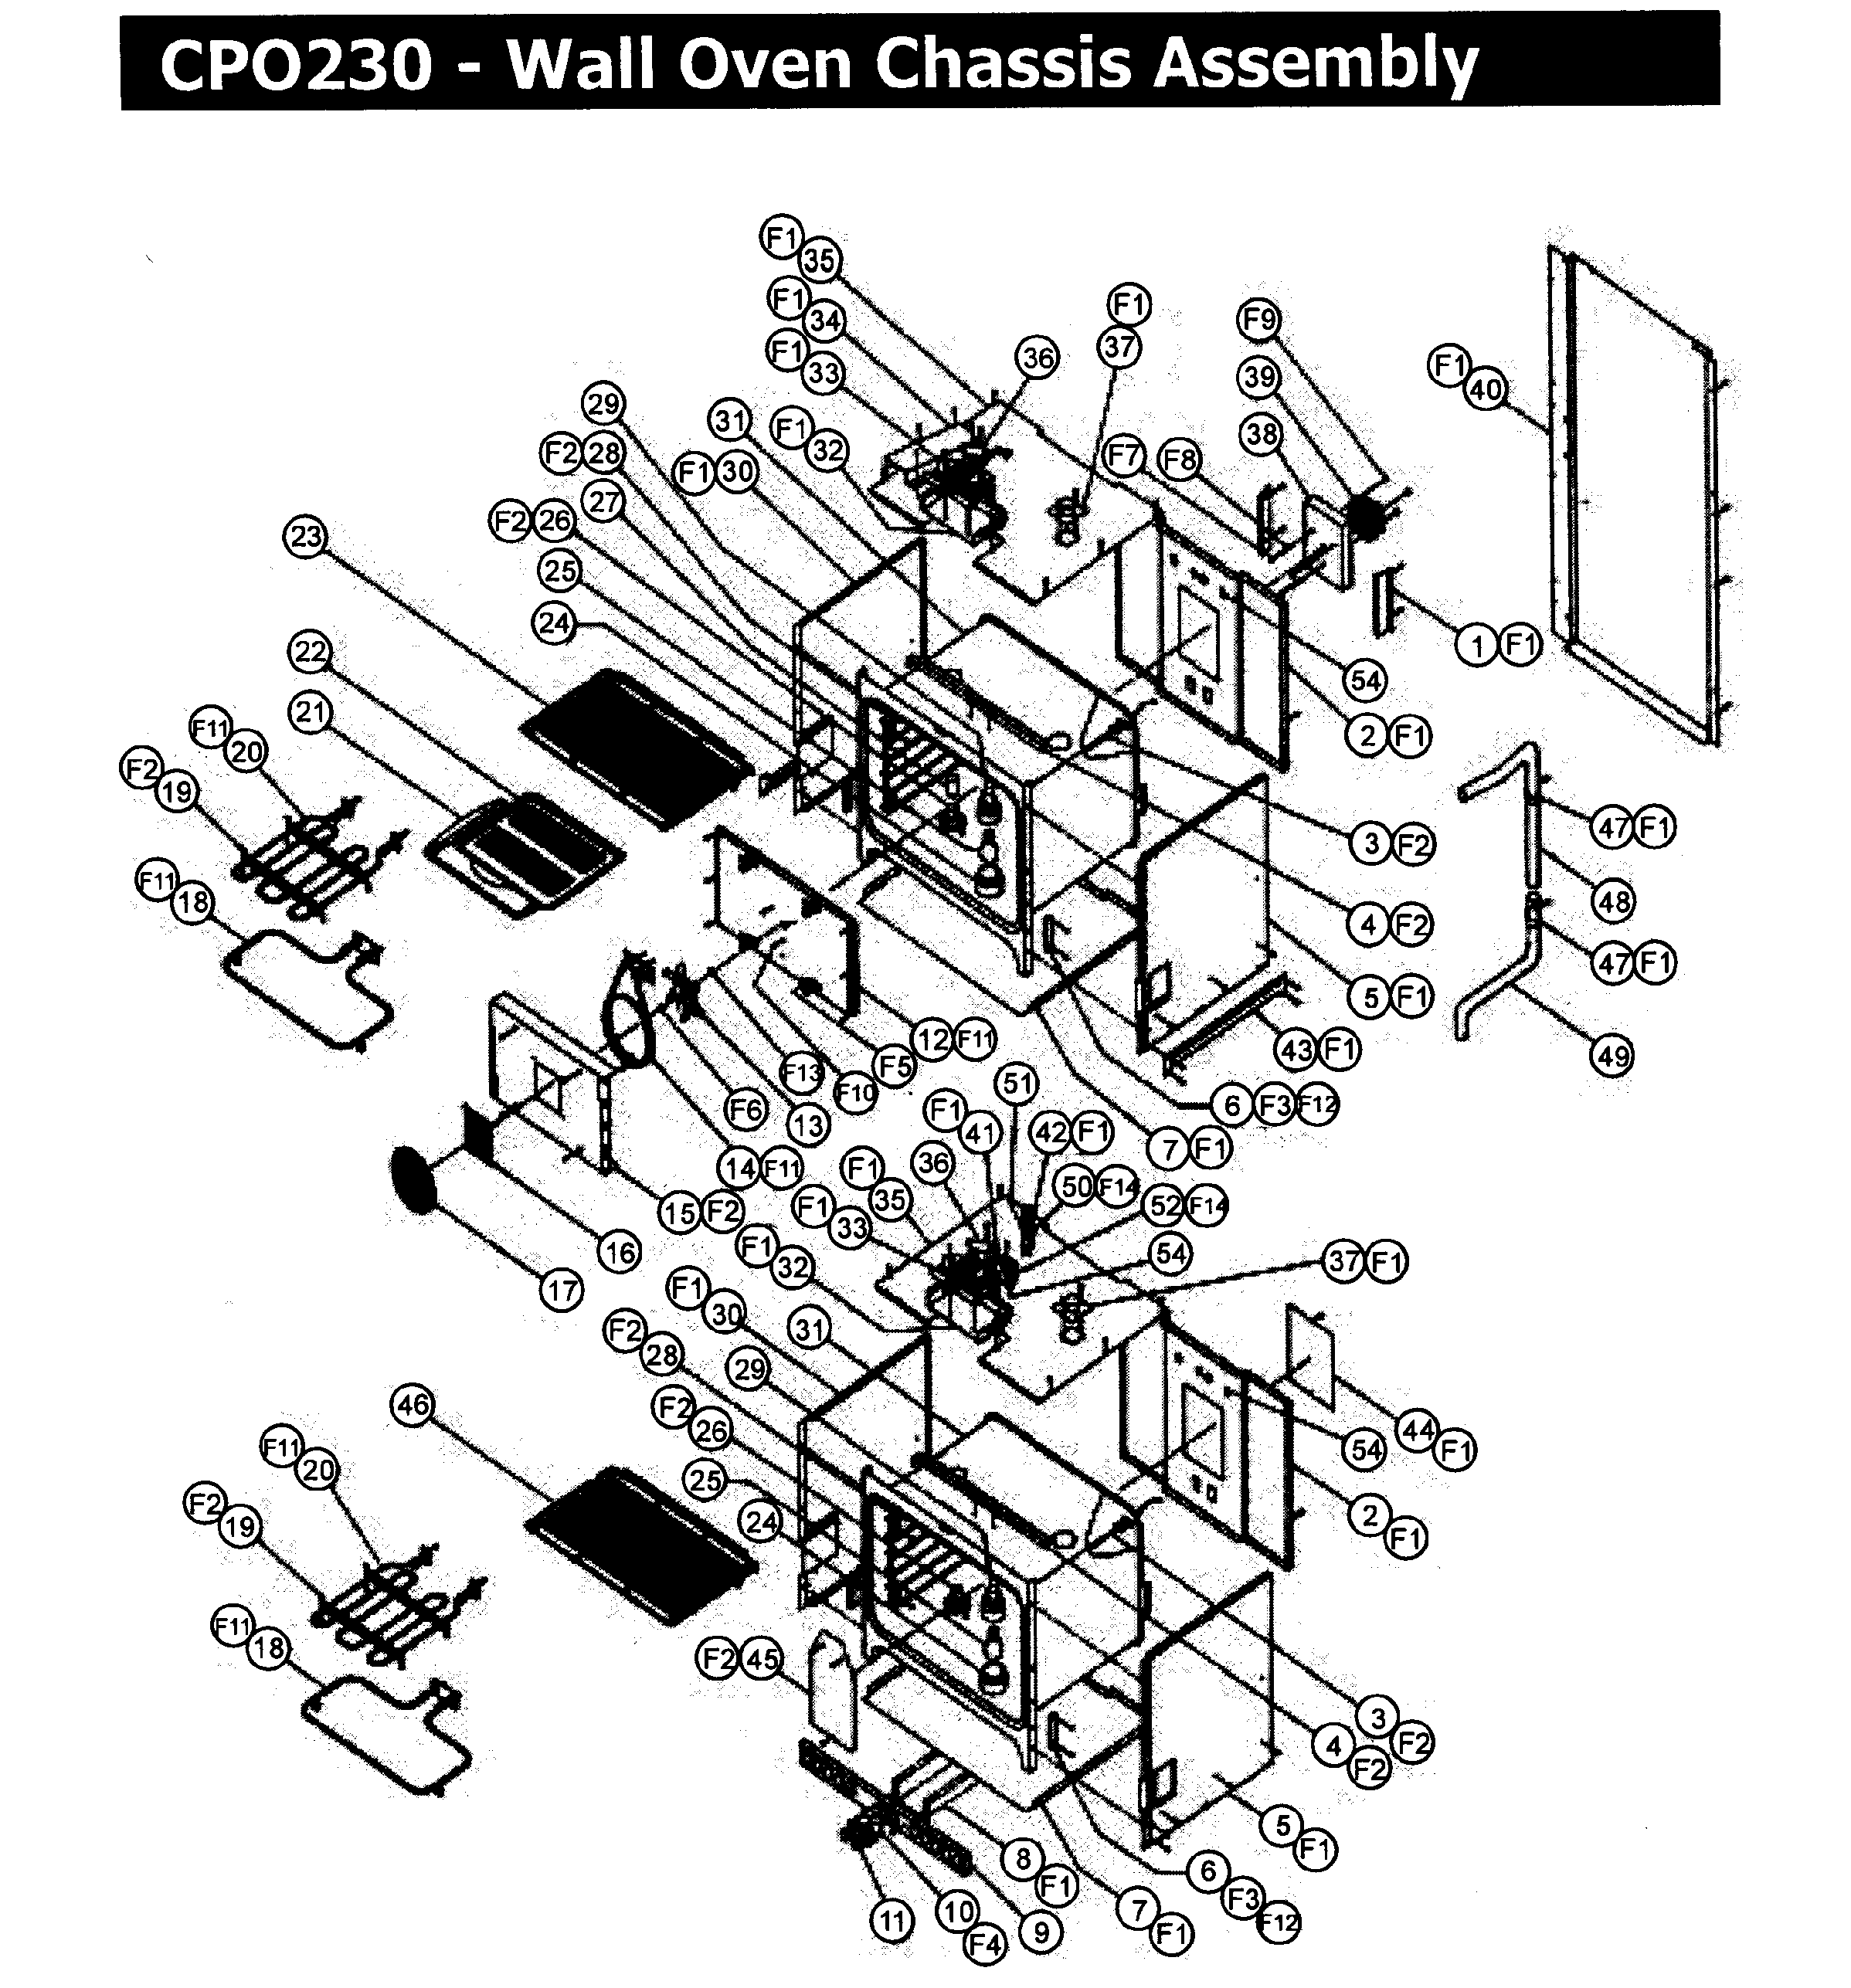 kenmore wall oven wiring diagram [ 2396 x 2574 Pixel ]